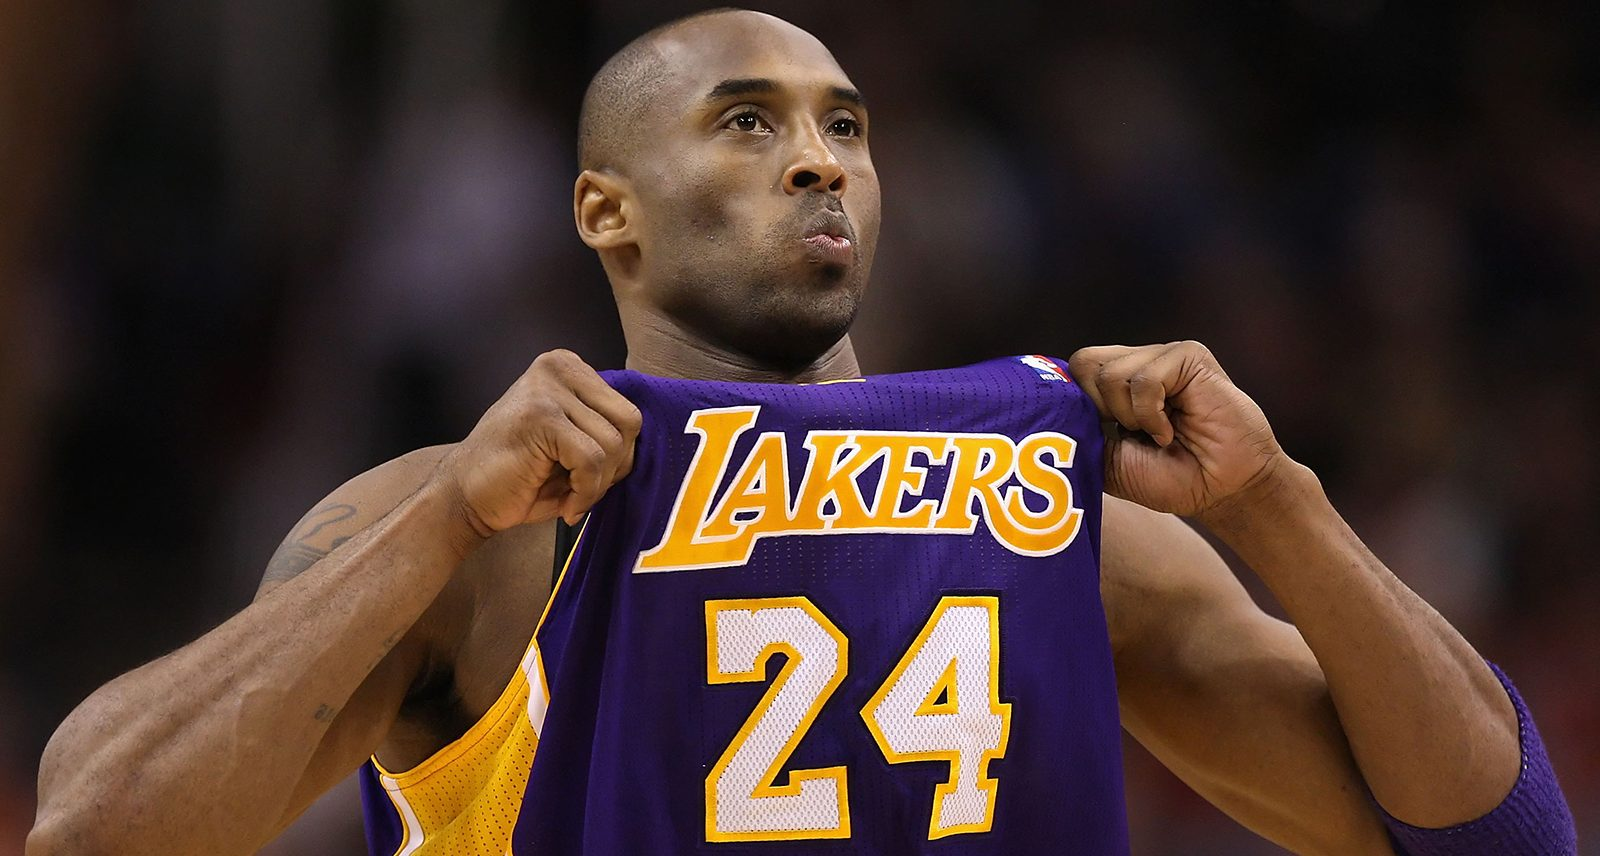 Kobe Bryant's 5 Coolest Collaborations Ever